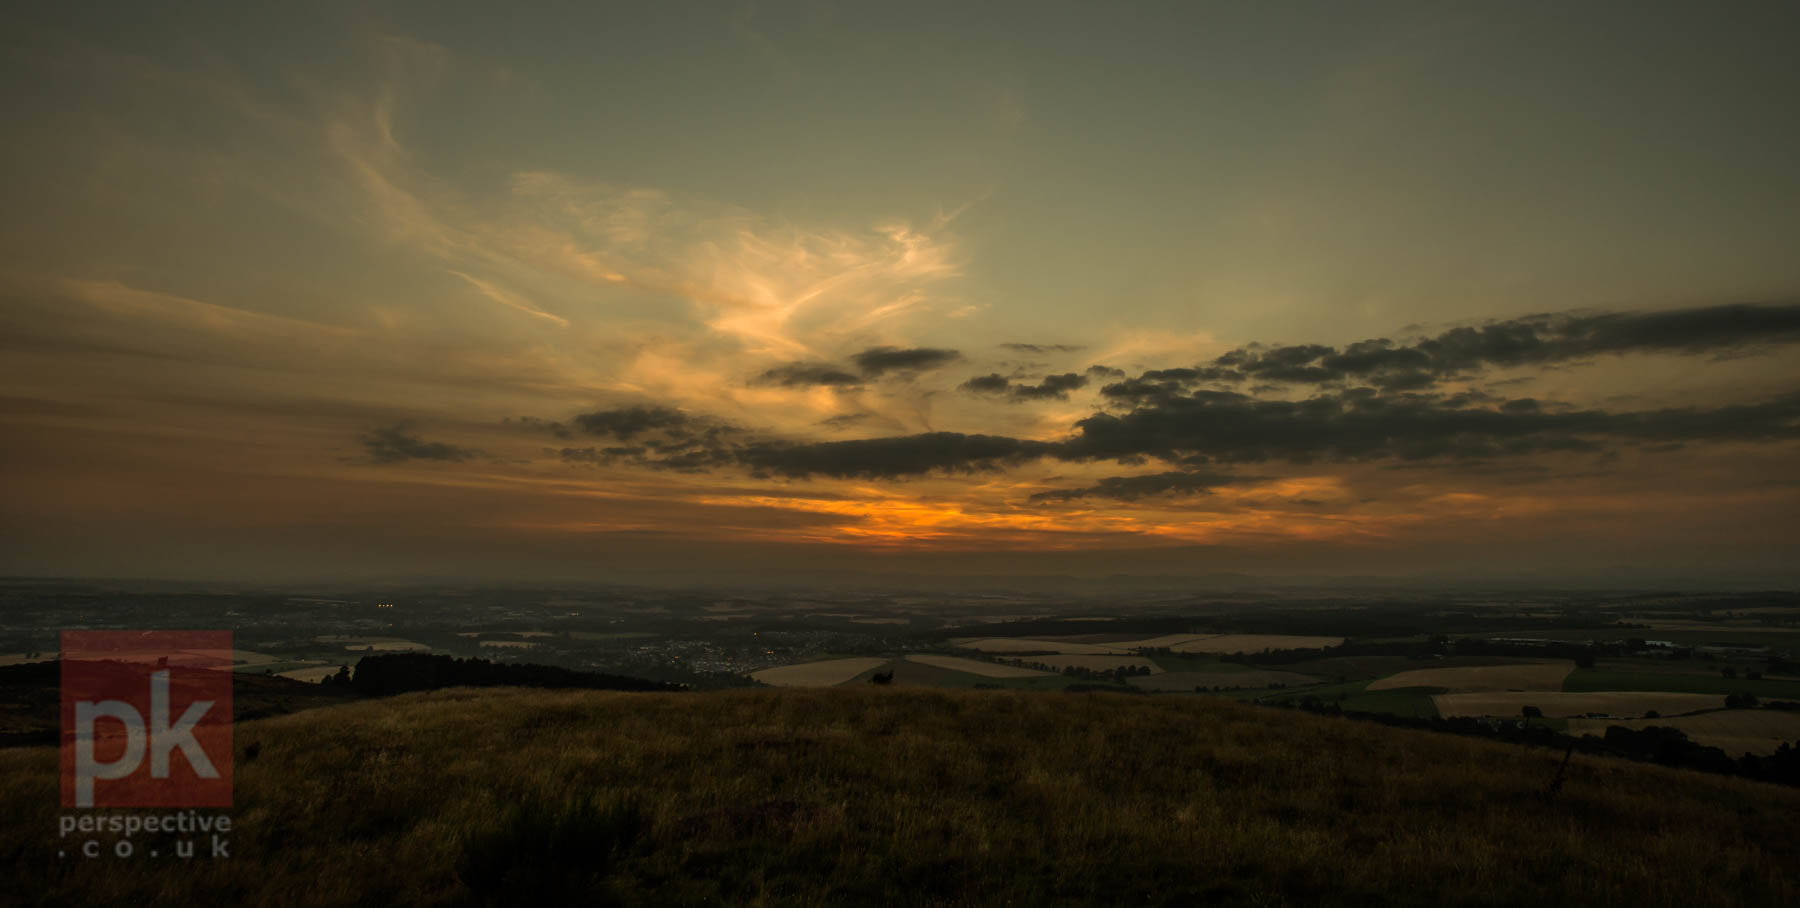 The sun setting over Scone - was a bit of a climb but worth it!